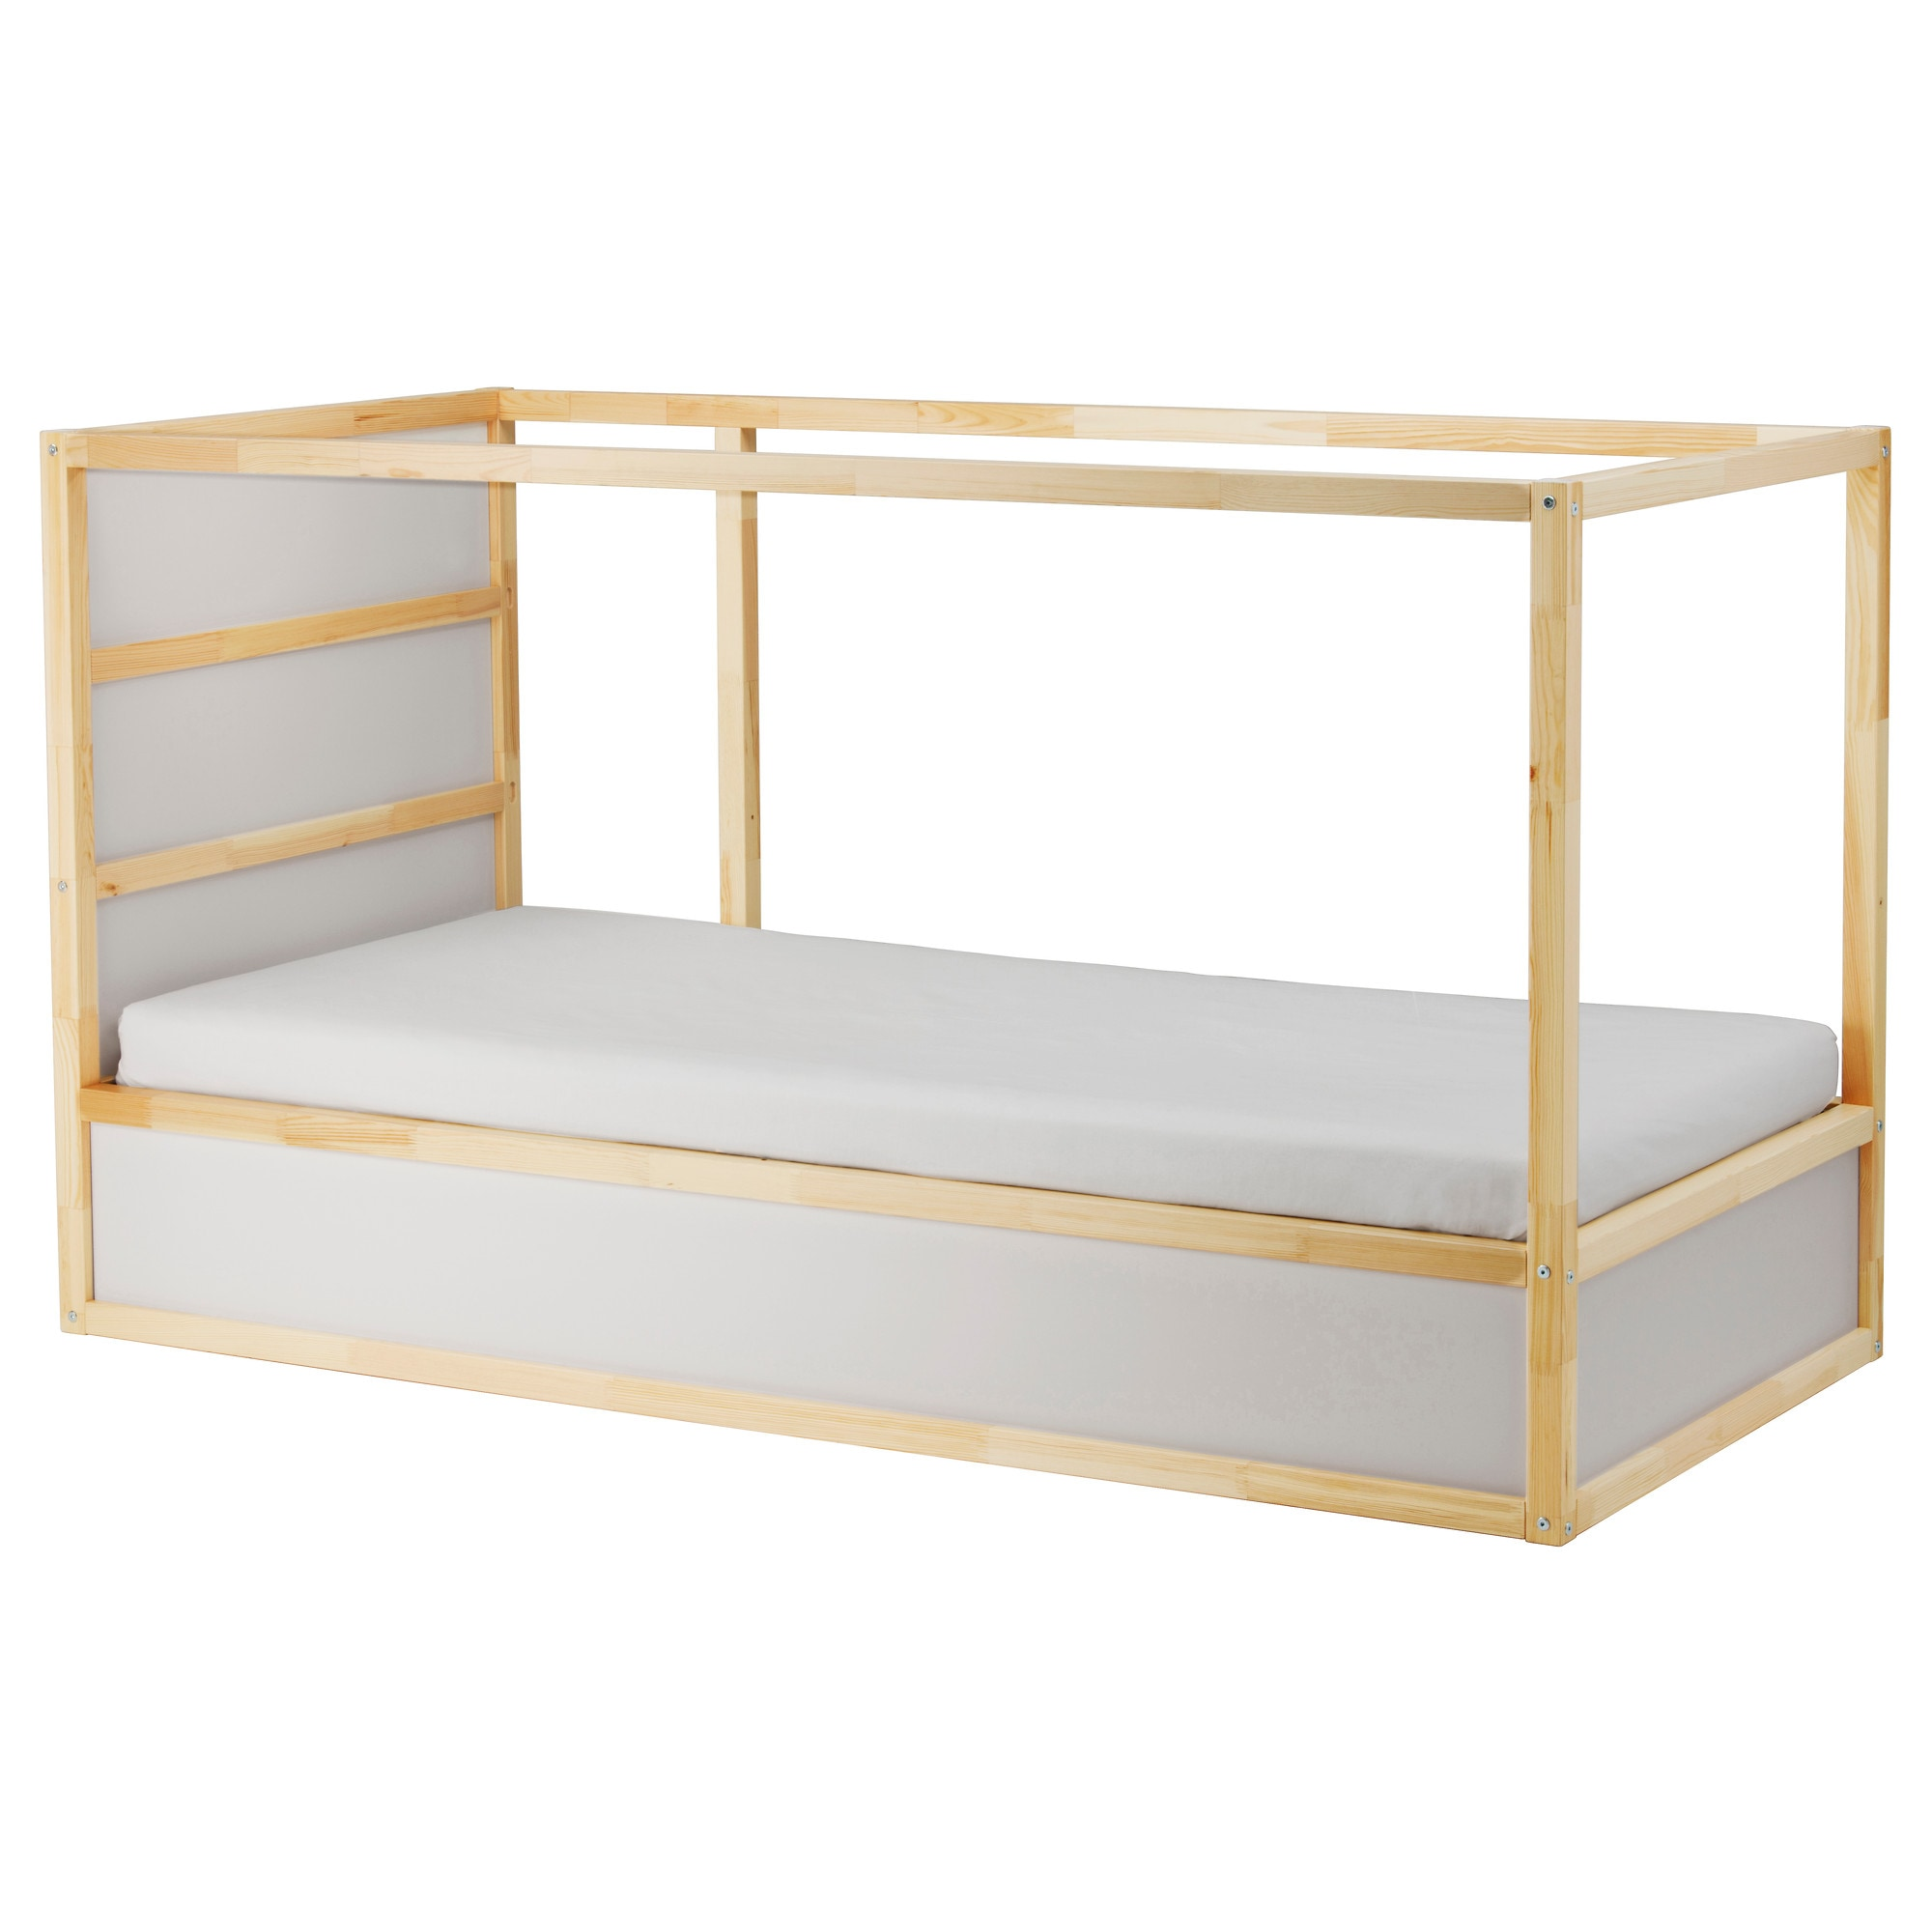 KURA Reversible bed - IKEA